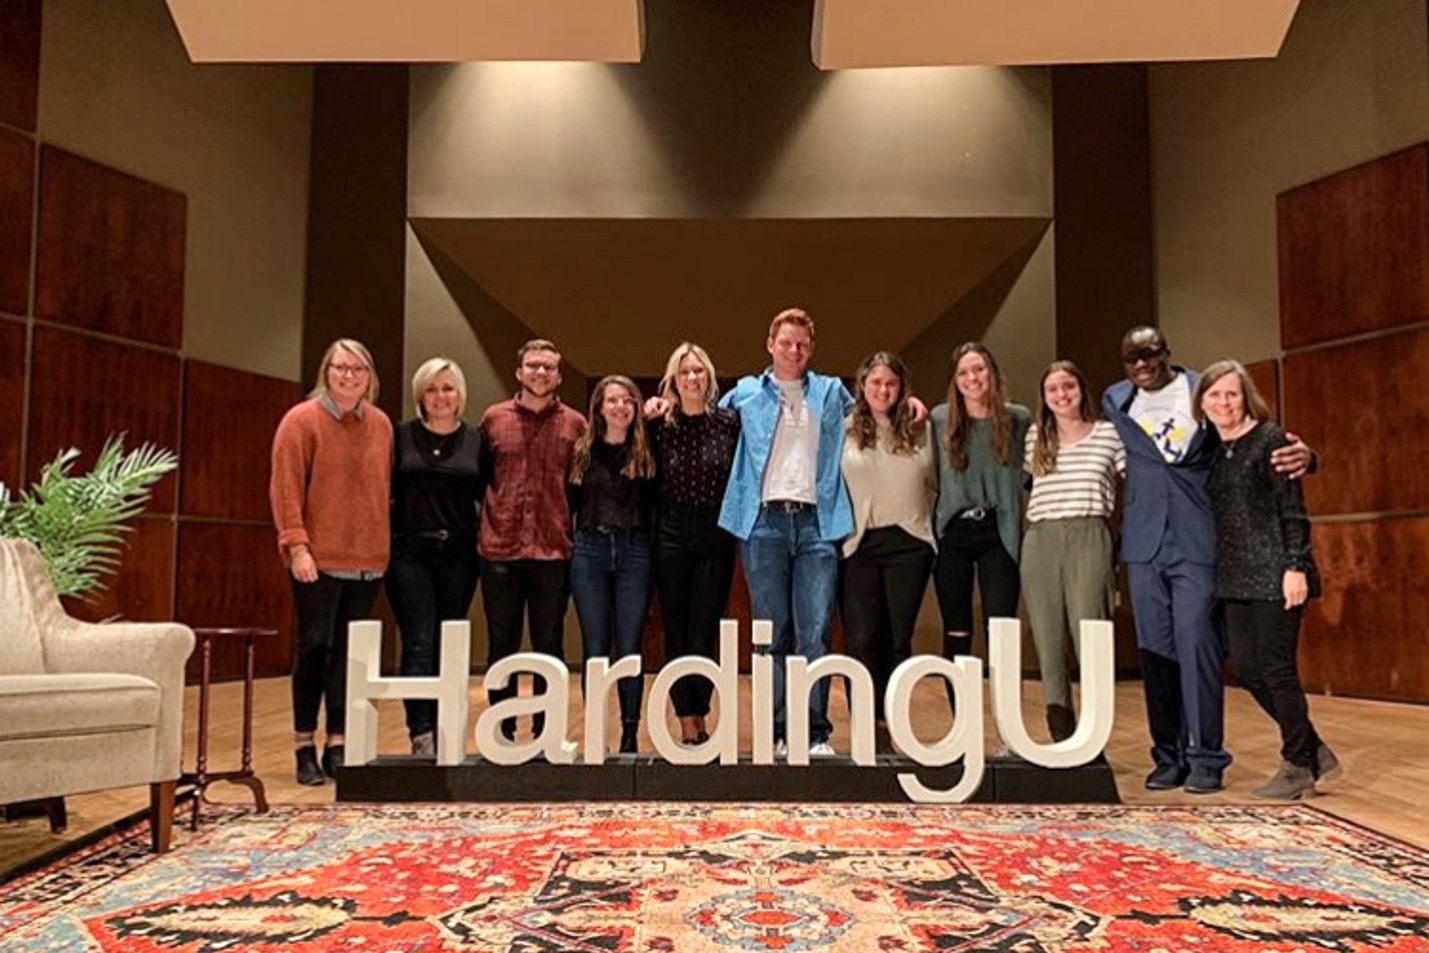 This is a photo of Communication studies students after an event they hosted at Harding University.